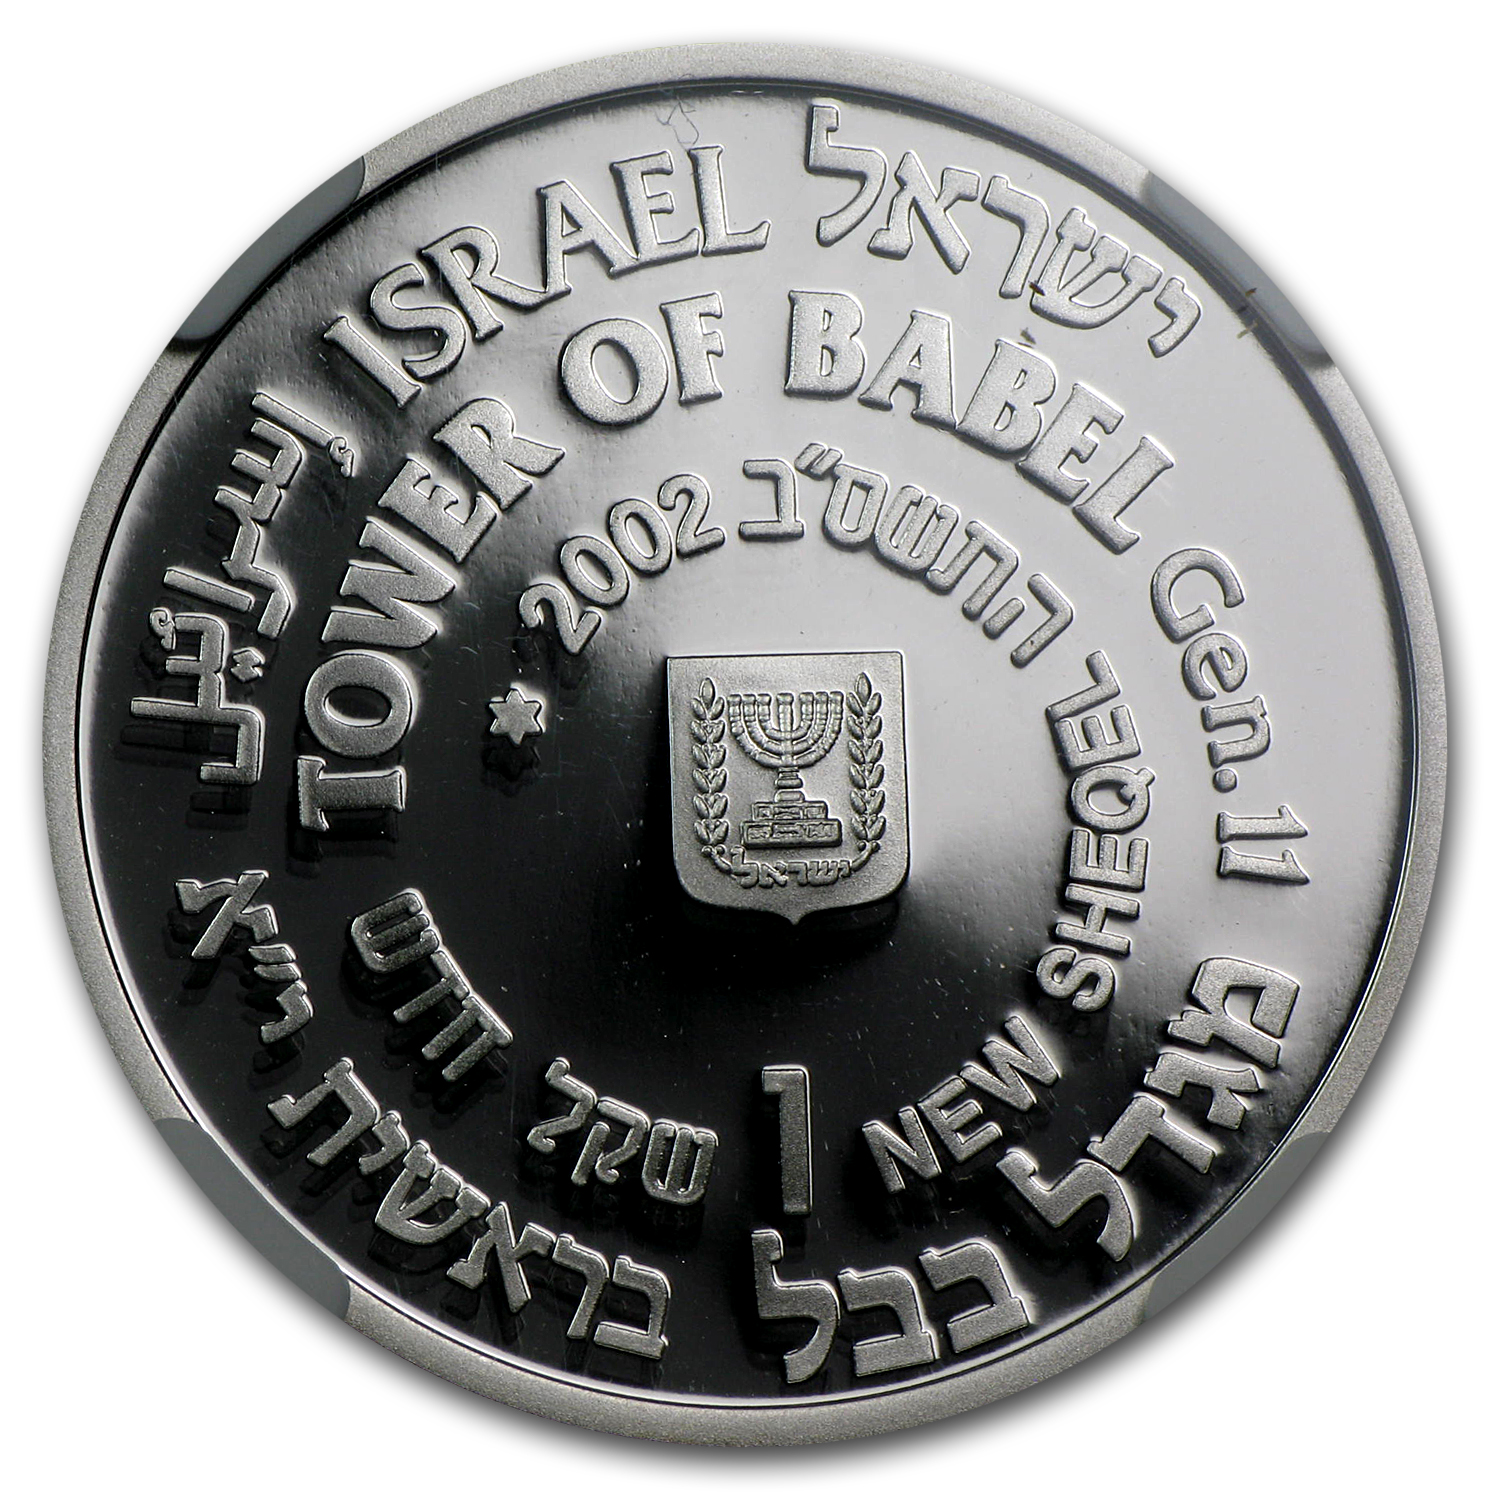 2002 Israel Tower of Babel Proof-Like Silver 1 NIS MS-69 NGC